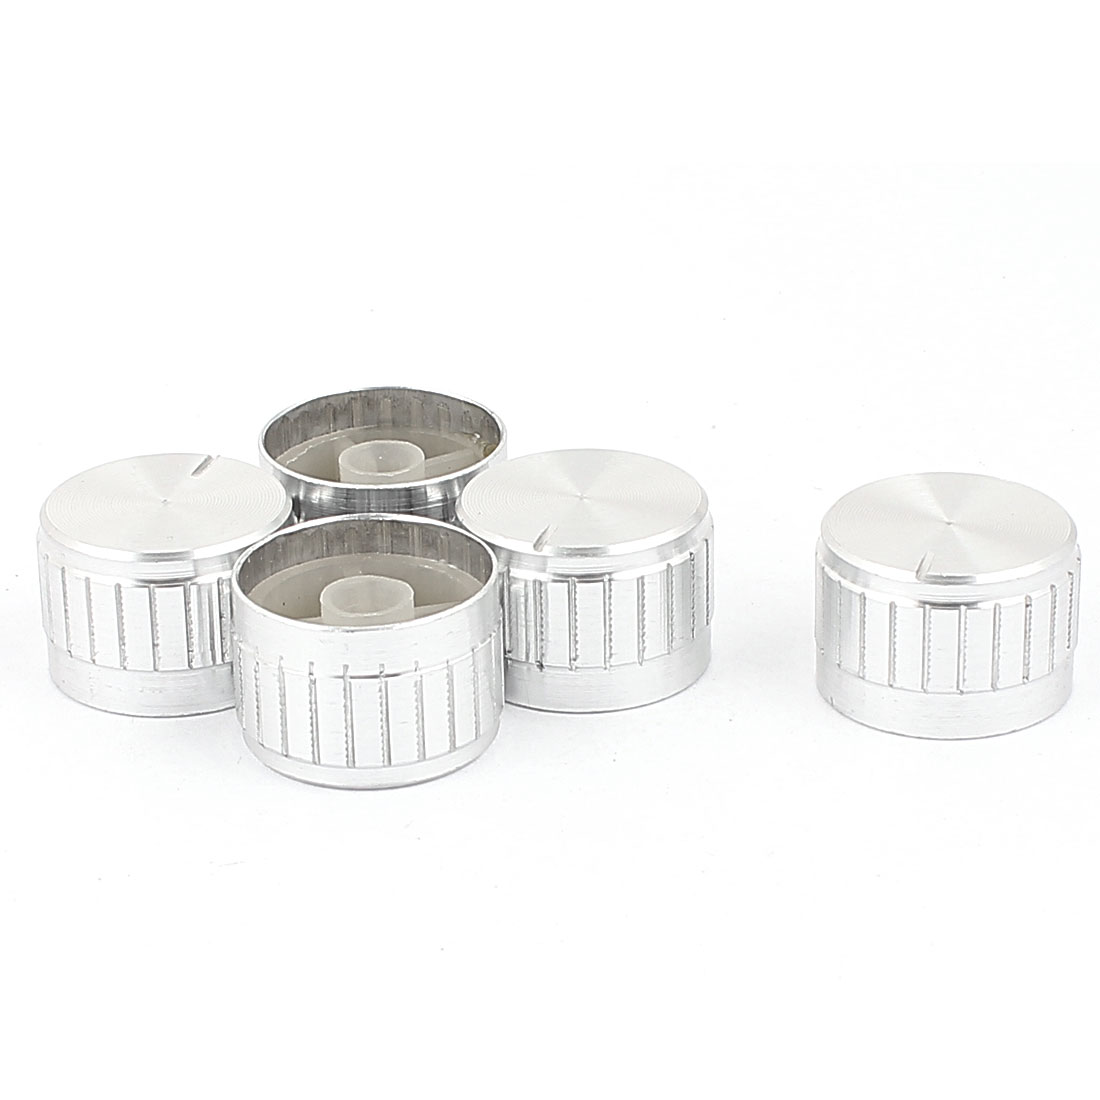 5 Pcs 26mm x 6mm Potentiometer Control Switch Volume Cap Aluminium Alloy Knurled Button Silver Tone